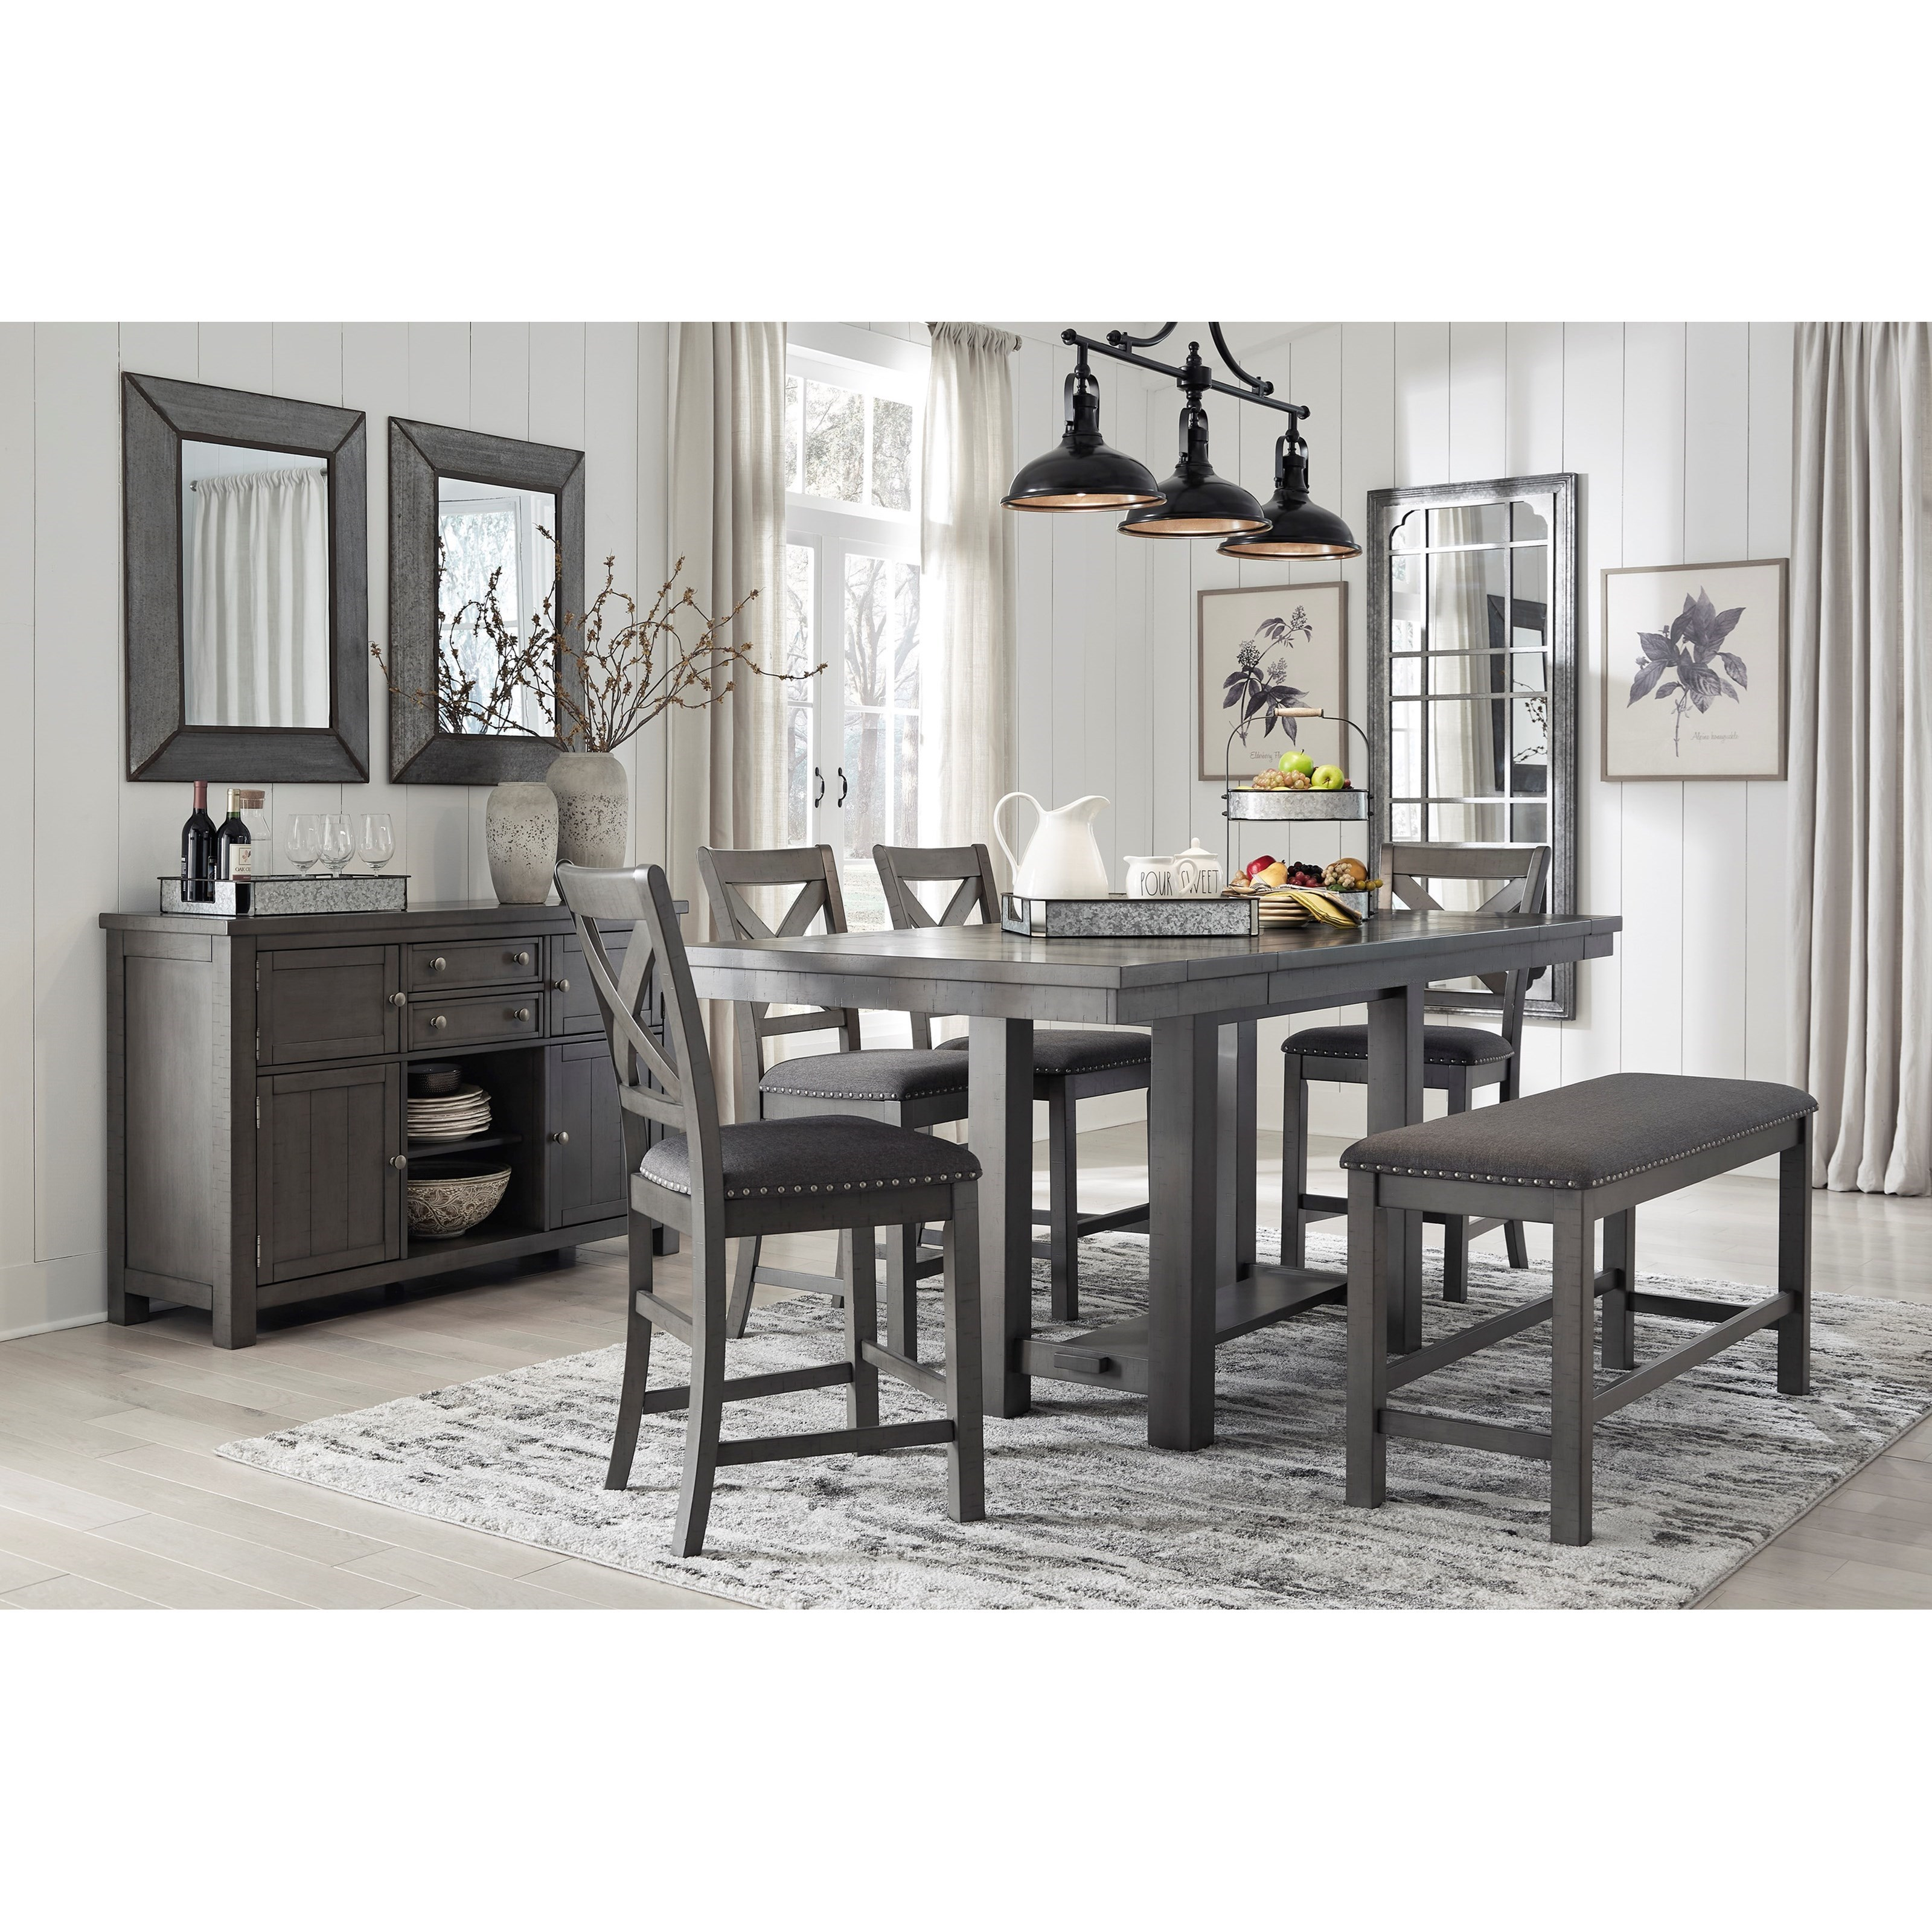 Myshanna Dining Room Group by Signature Design by Ashley at Furniture Barn